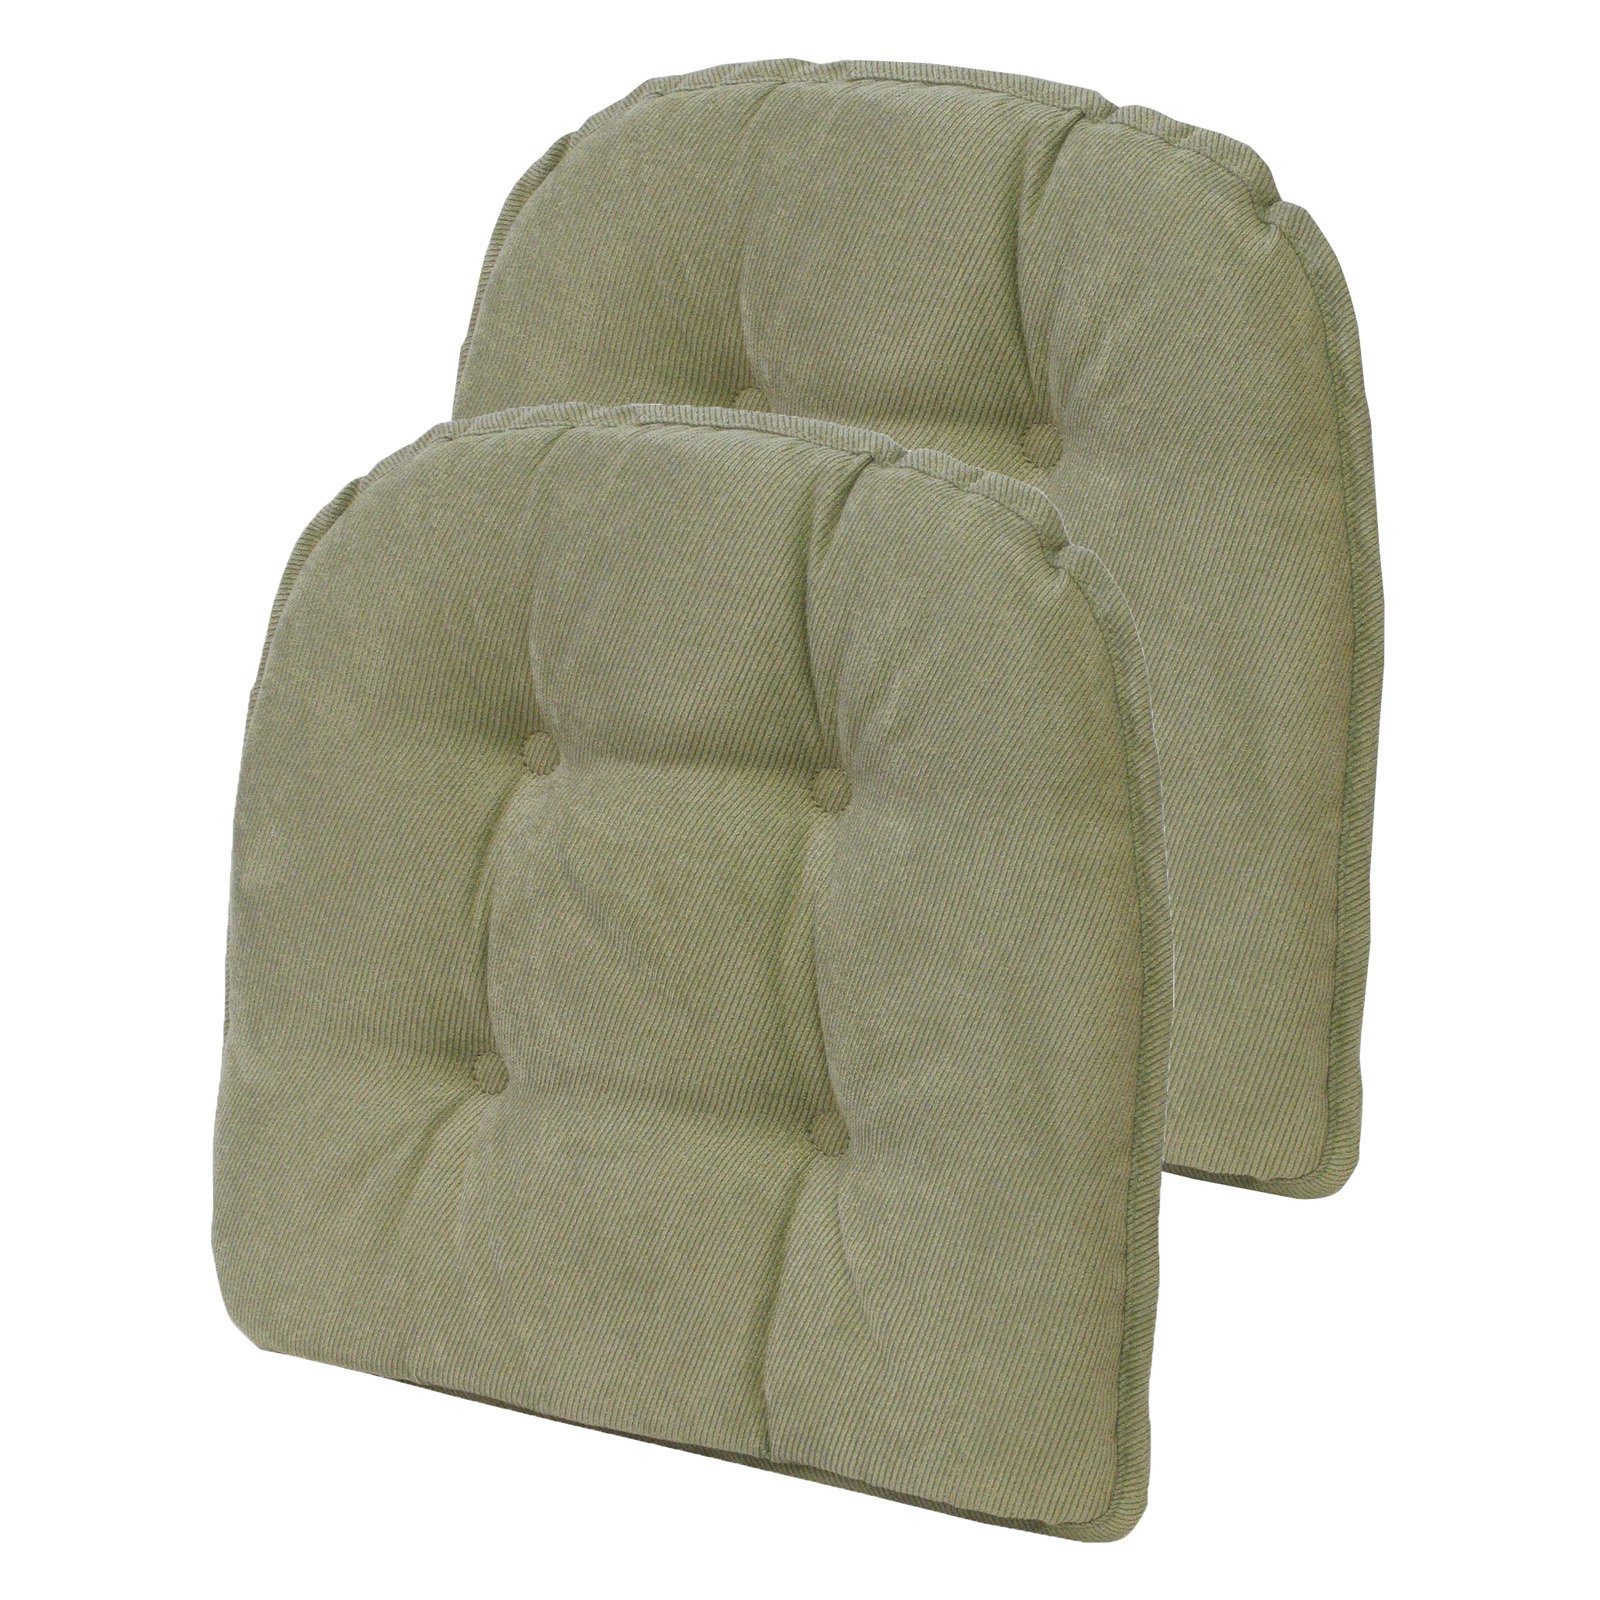 Klear Vu Gripper Twillo 15 X 16 In Tufted Dining Chair Cushion Set Of 2 Tufted Dining Chairs Tufted Chair Tufted Chair Cushion